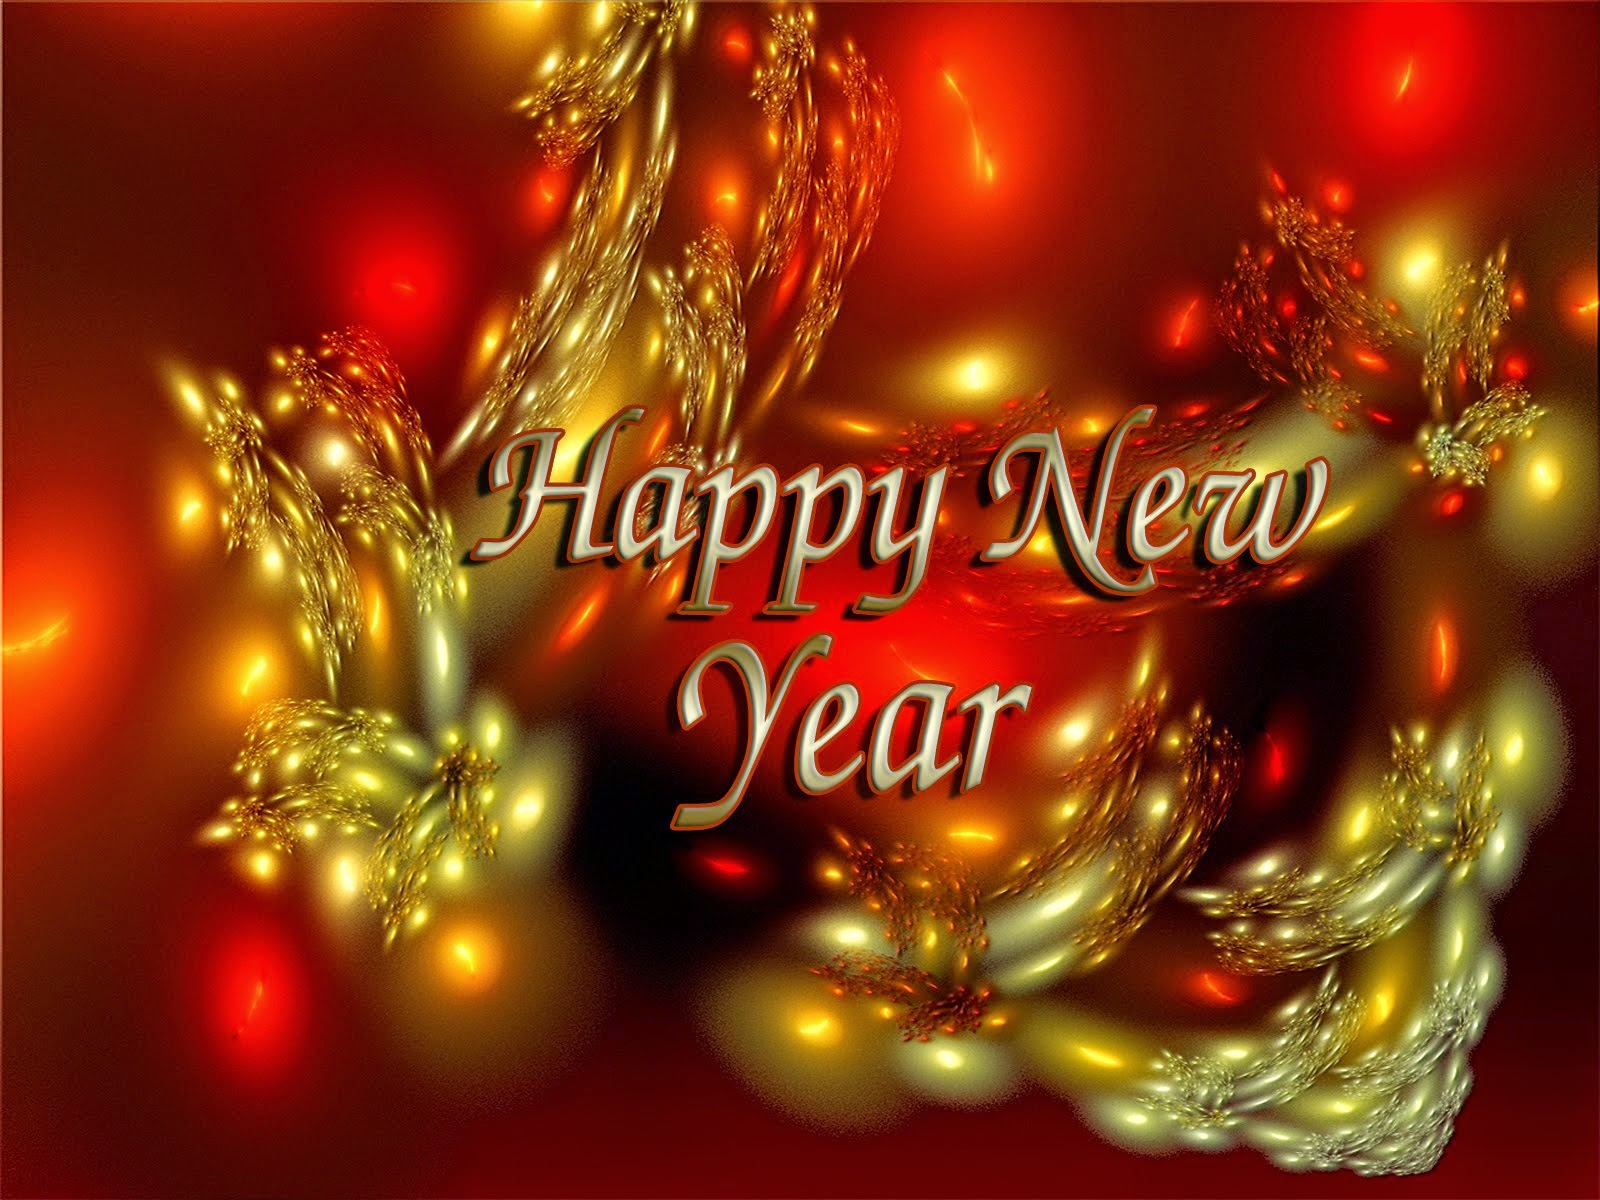 Happy new year wishes greetings hd wallpaper m4hsunfo